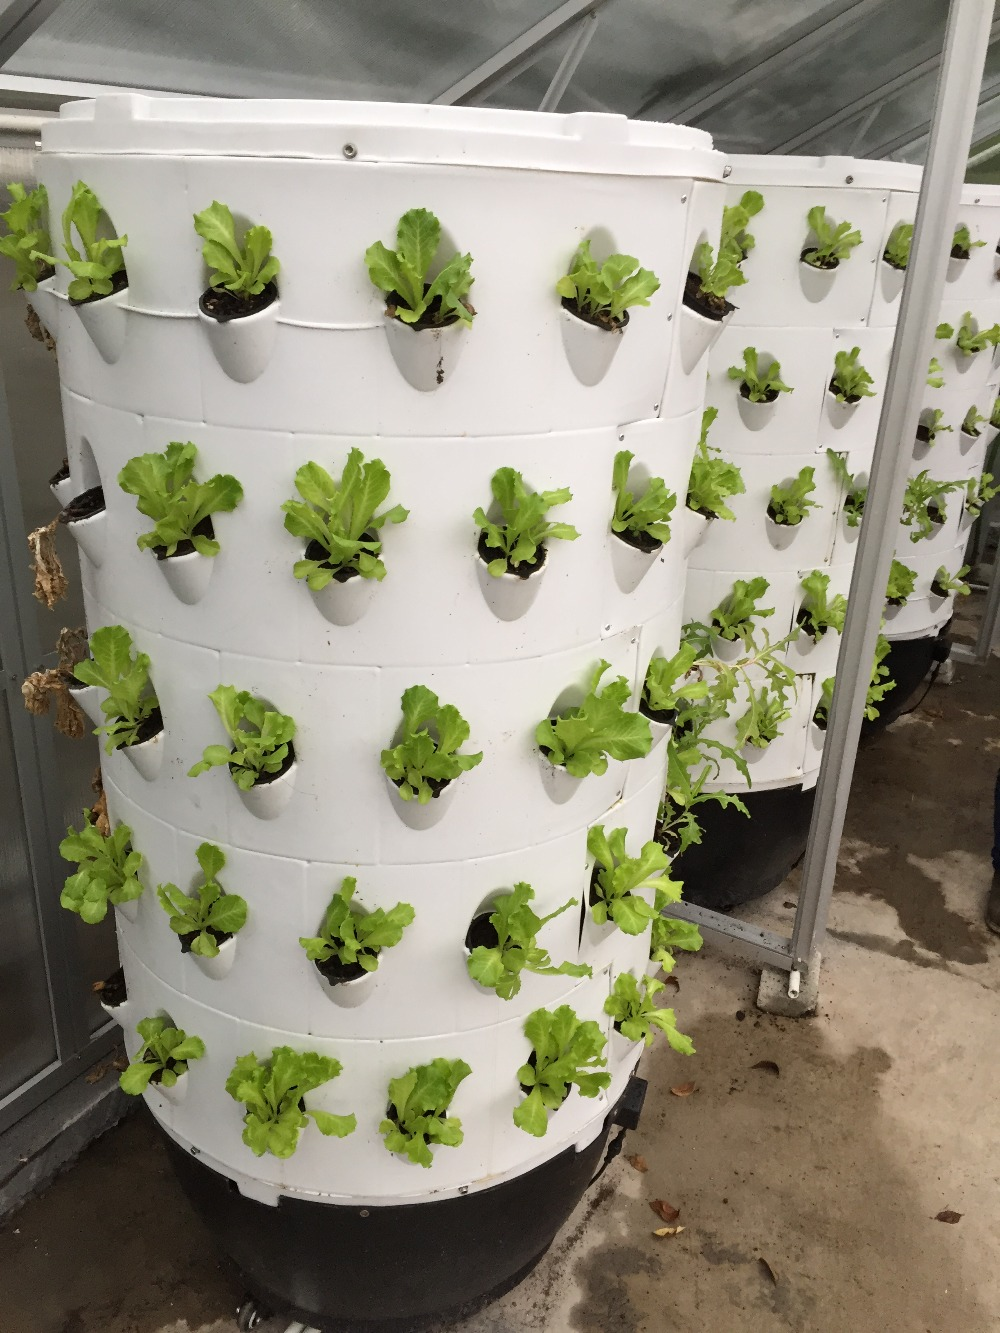 70pcs hydroponics system aeroponic tower garden for for Vertical garden tower